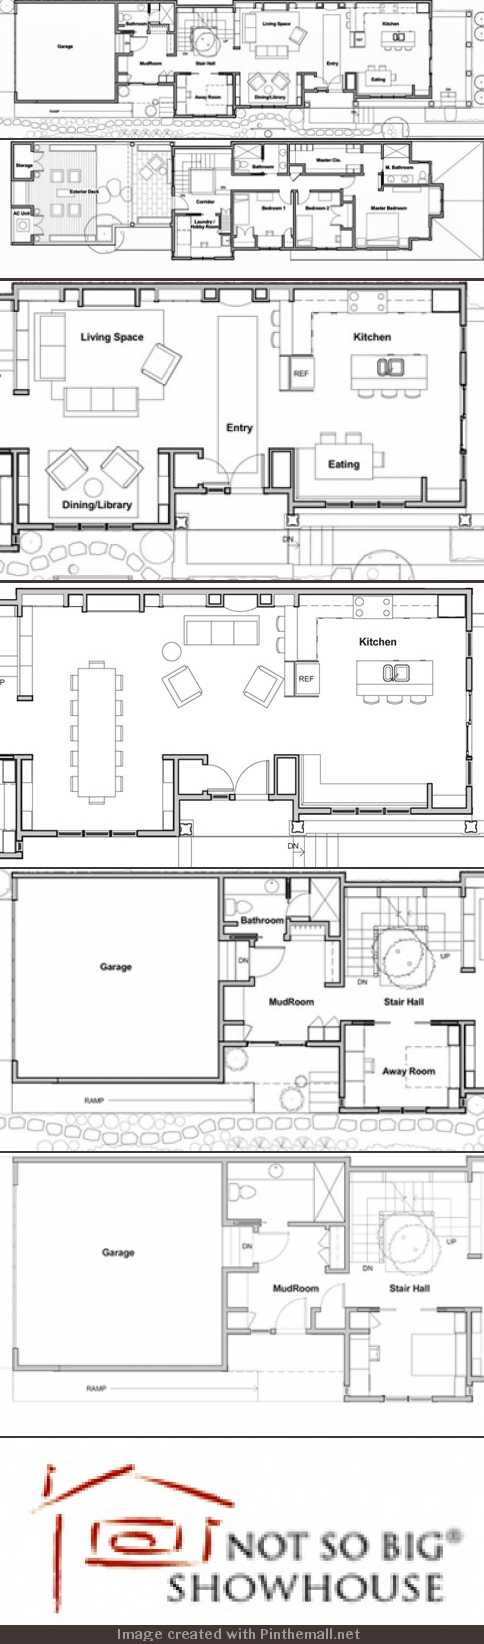 The Not So Big Showhouse If You Dont Allow Some Spaces To Do